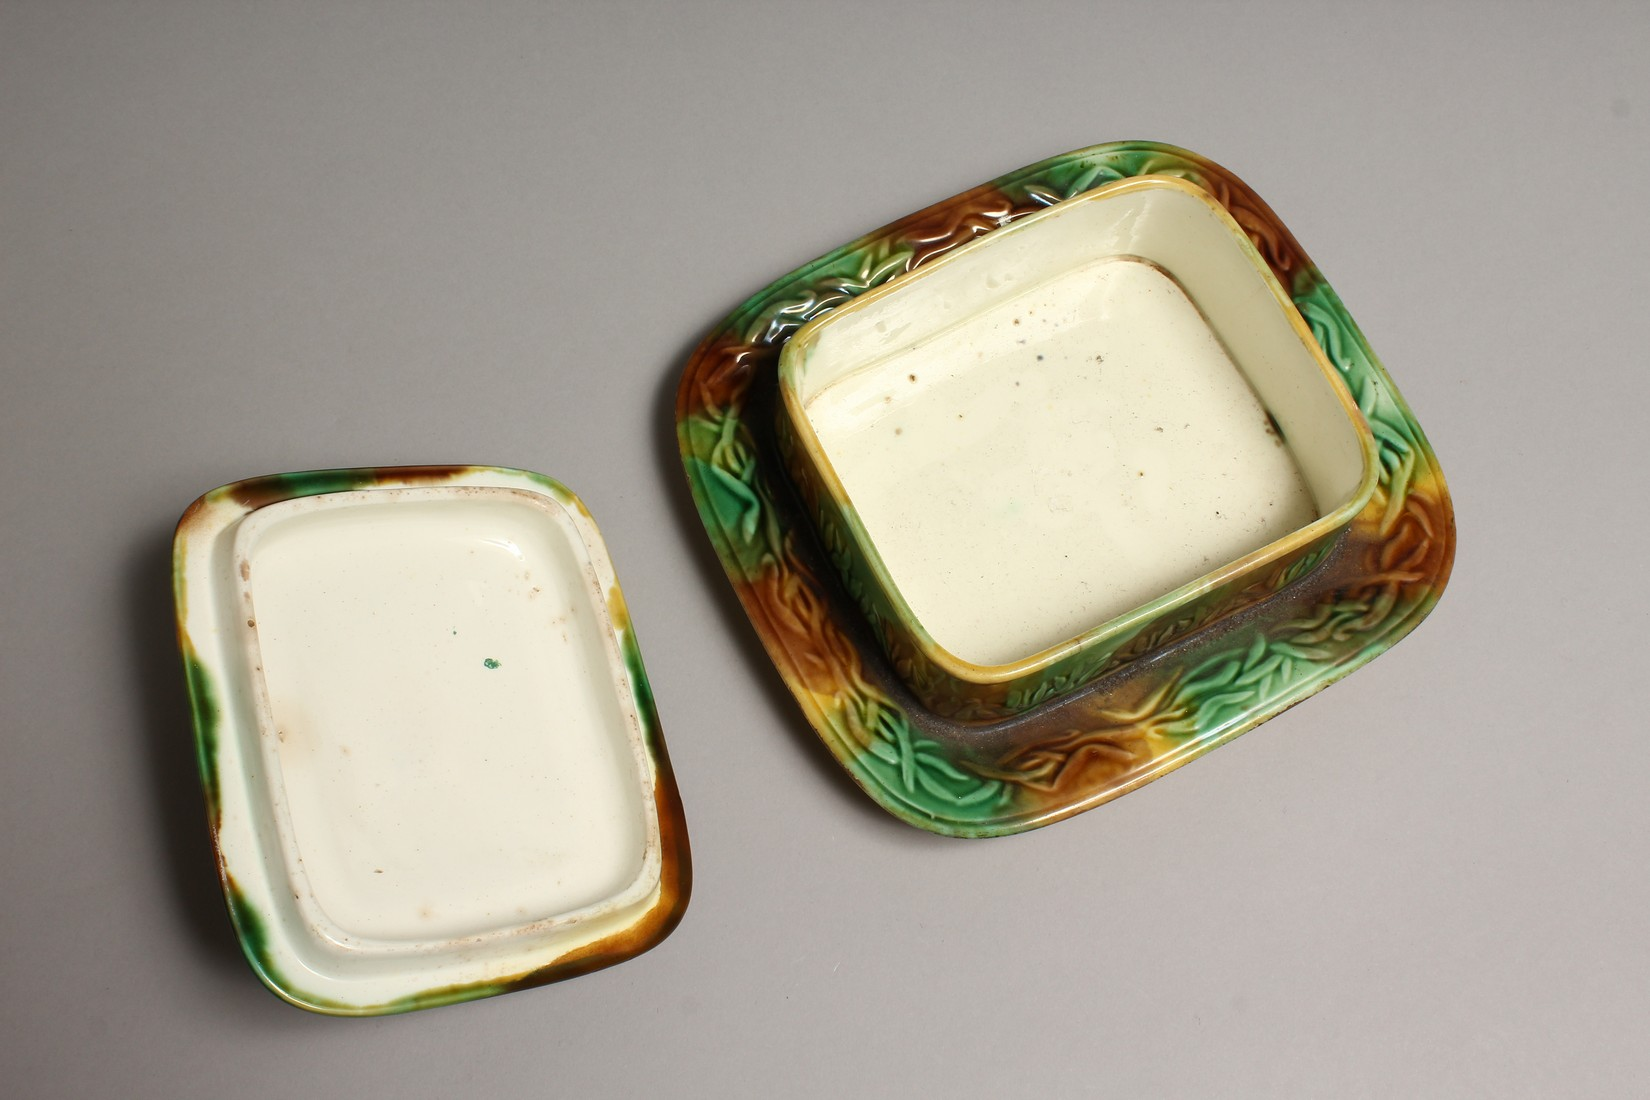 A MAJOLICA SARDINE DISH AND COVER, green and brown glaze with moulded decoration and shell handle. - Image 3 of 4